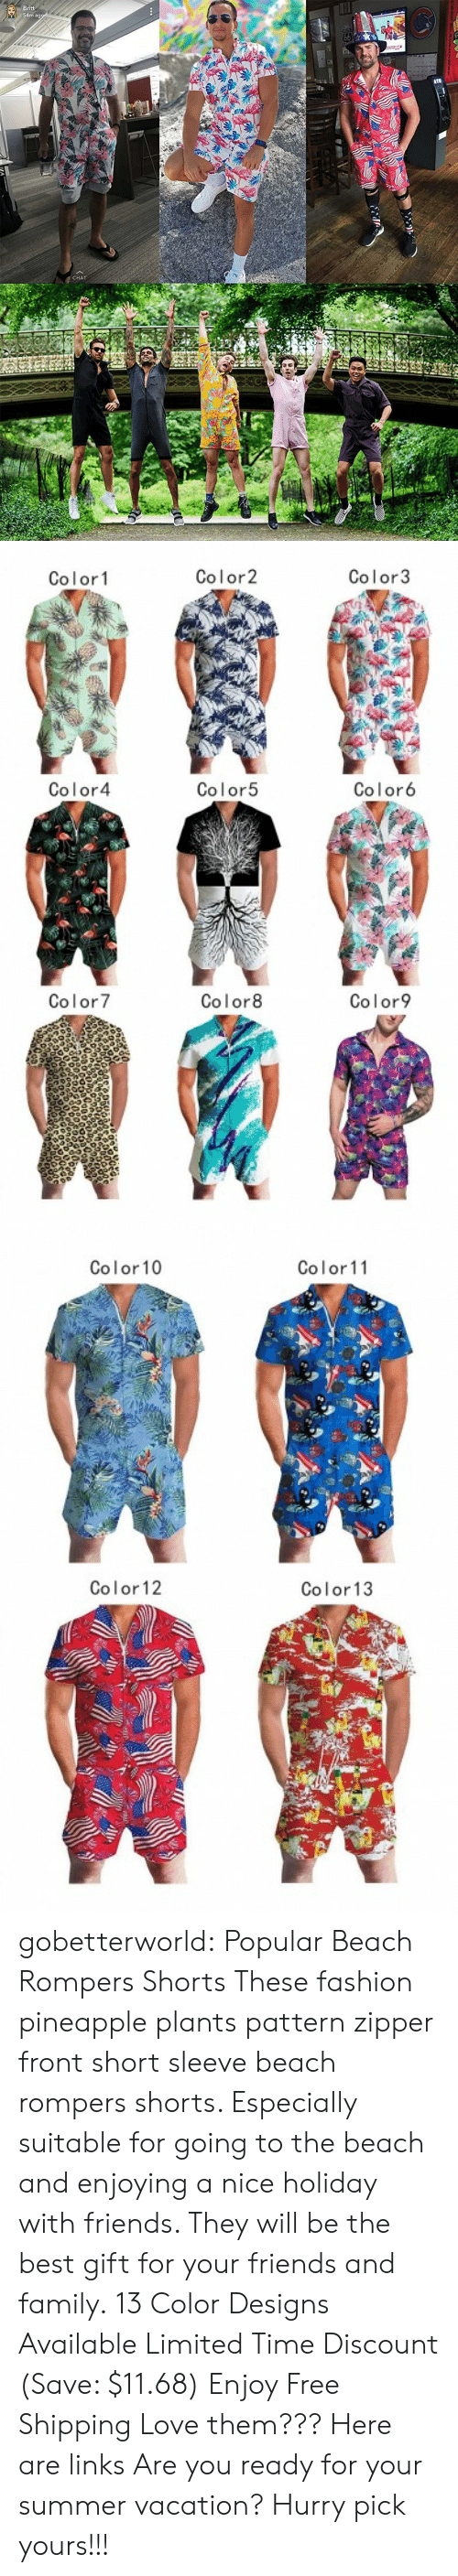 Family, Fashion, and Friends: Britt  54m ago  66  ...   Color2  Color3  Color1  Color4  Color5  Color6  Color8  Color7  Color9   Color10  Color11  Color 12  Color13 gobetterworld: Popular Beach Rompers Shorts These fashion pineapple plants pattern zipper front short sleeve beach rompers shorts. Especially suitable for going to the beach and enjoying a nice holiday with friends. They will be the best gift for your friends and family.  13 Color Designs AvailableLimited Time Discount (Save: $11.68) Enjoy Free Shipping   Love them??? Here are links   Are you ready for your summer vacation? Hurry pick yours!!!